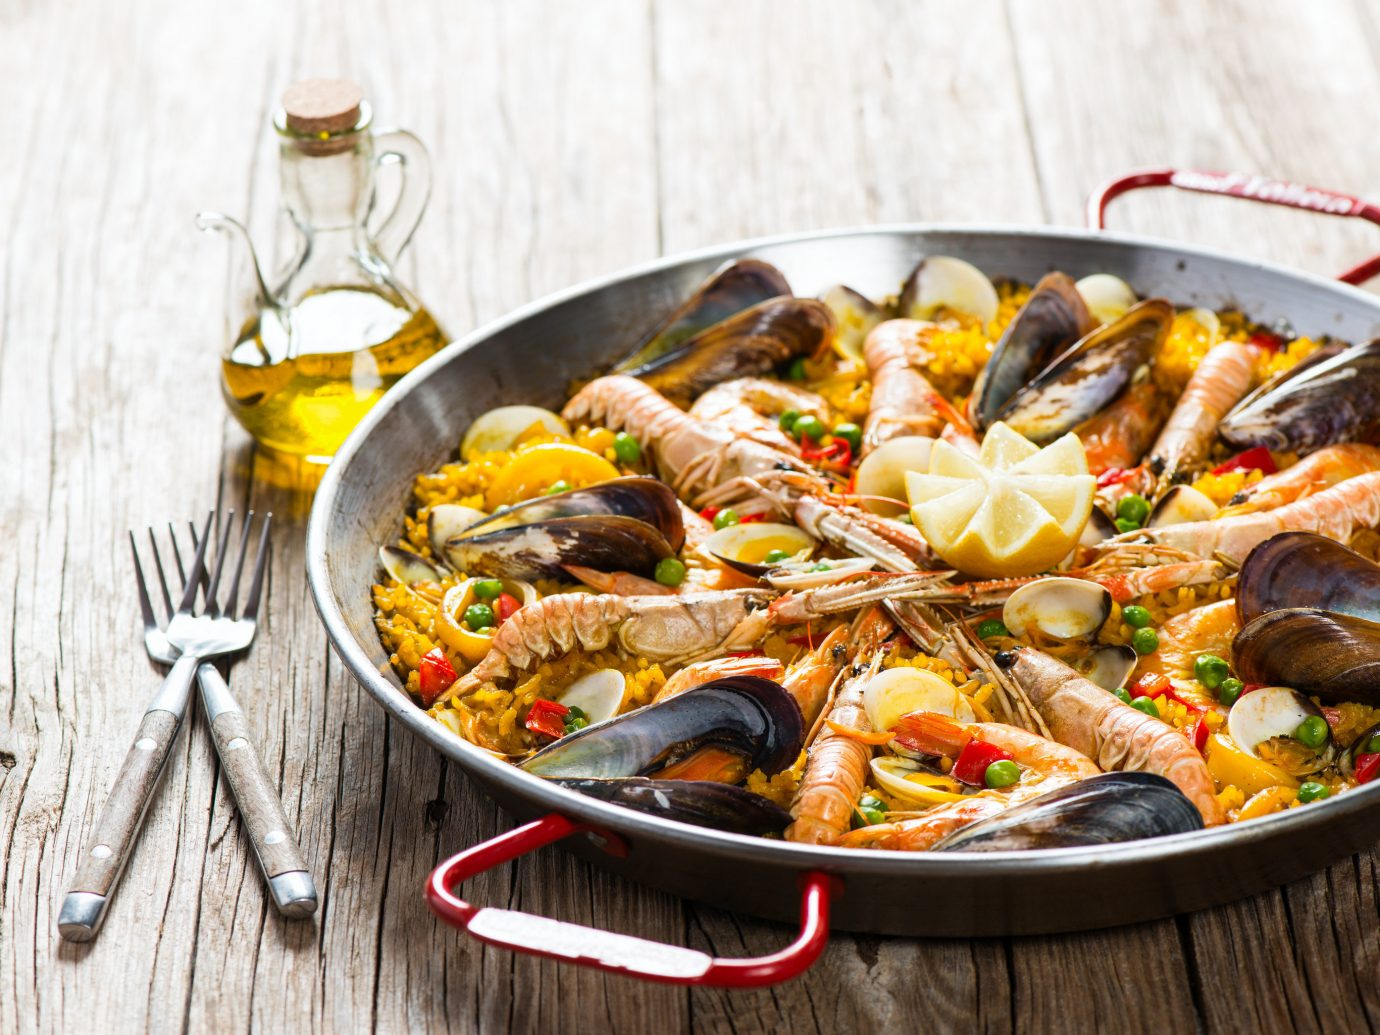 Traditional paella in Spain